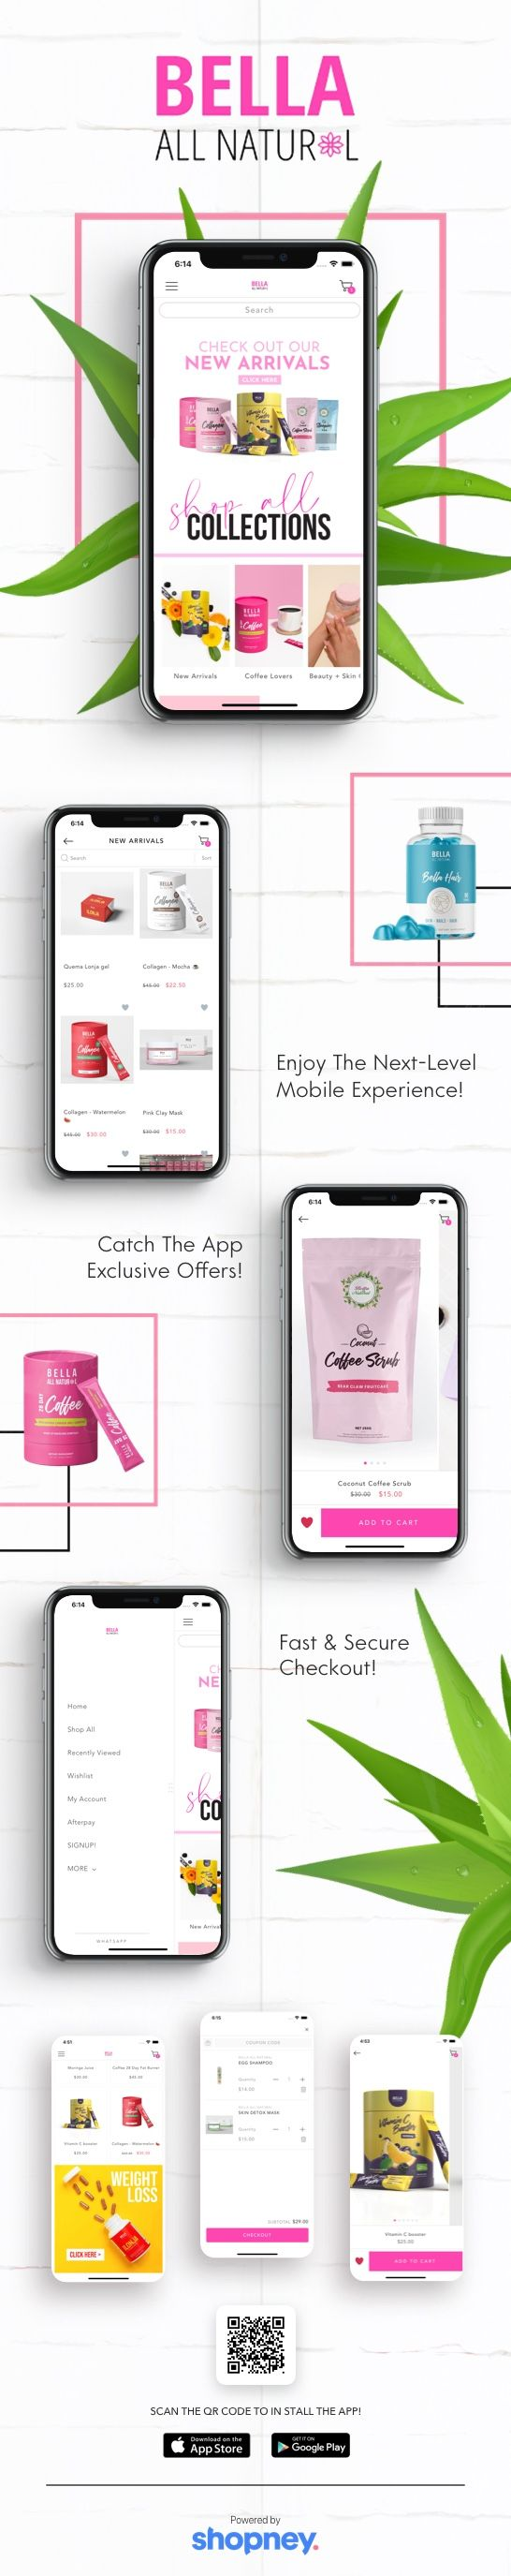 Bella All Natural mobile app design